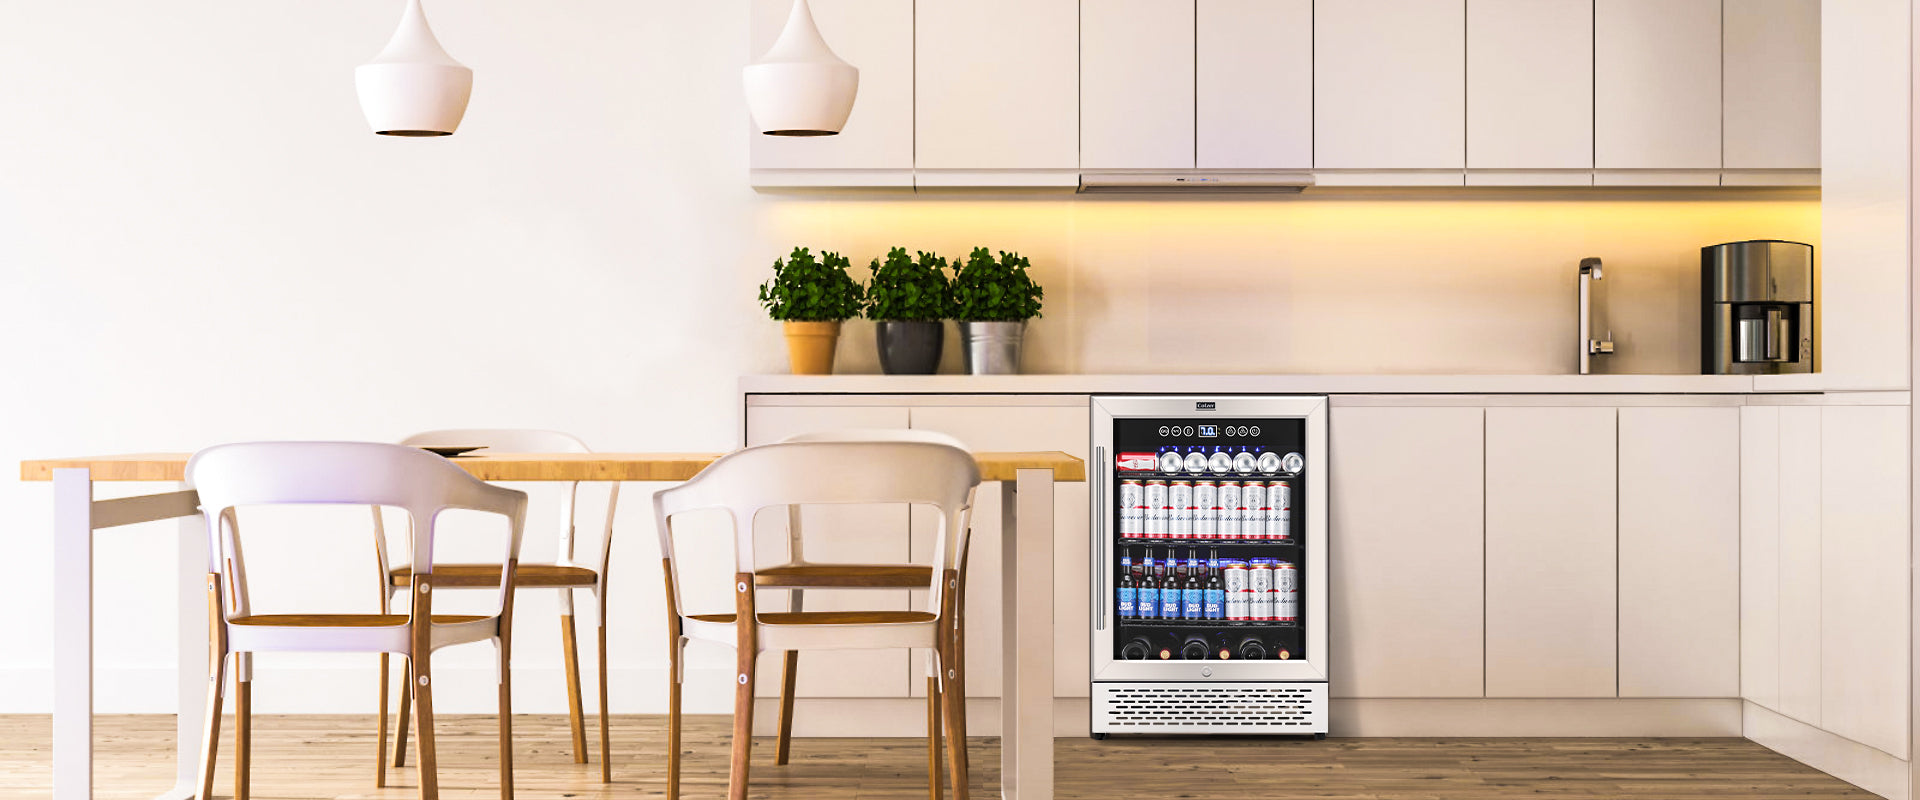 Why Choosing The Right Cooler Refrigerators Is A Tough Job?